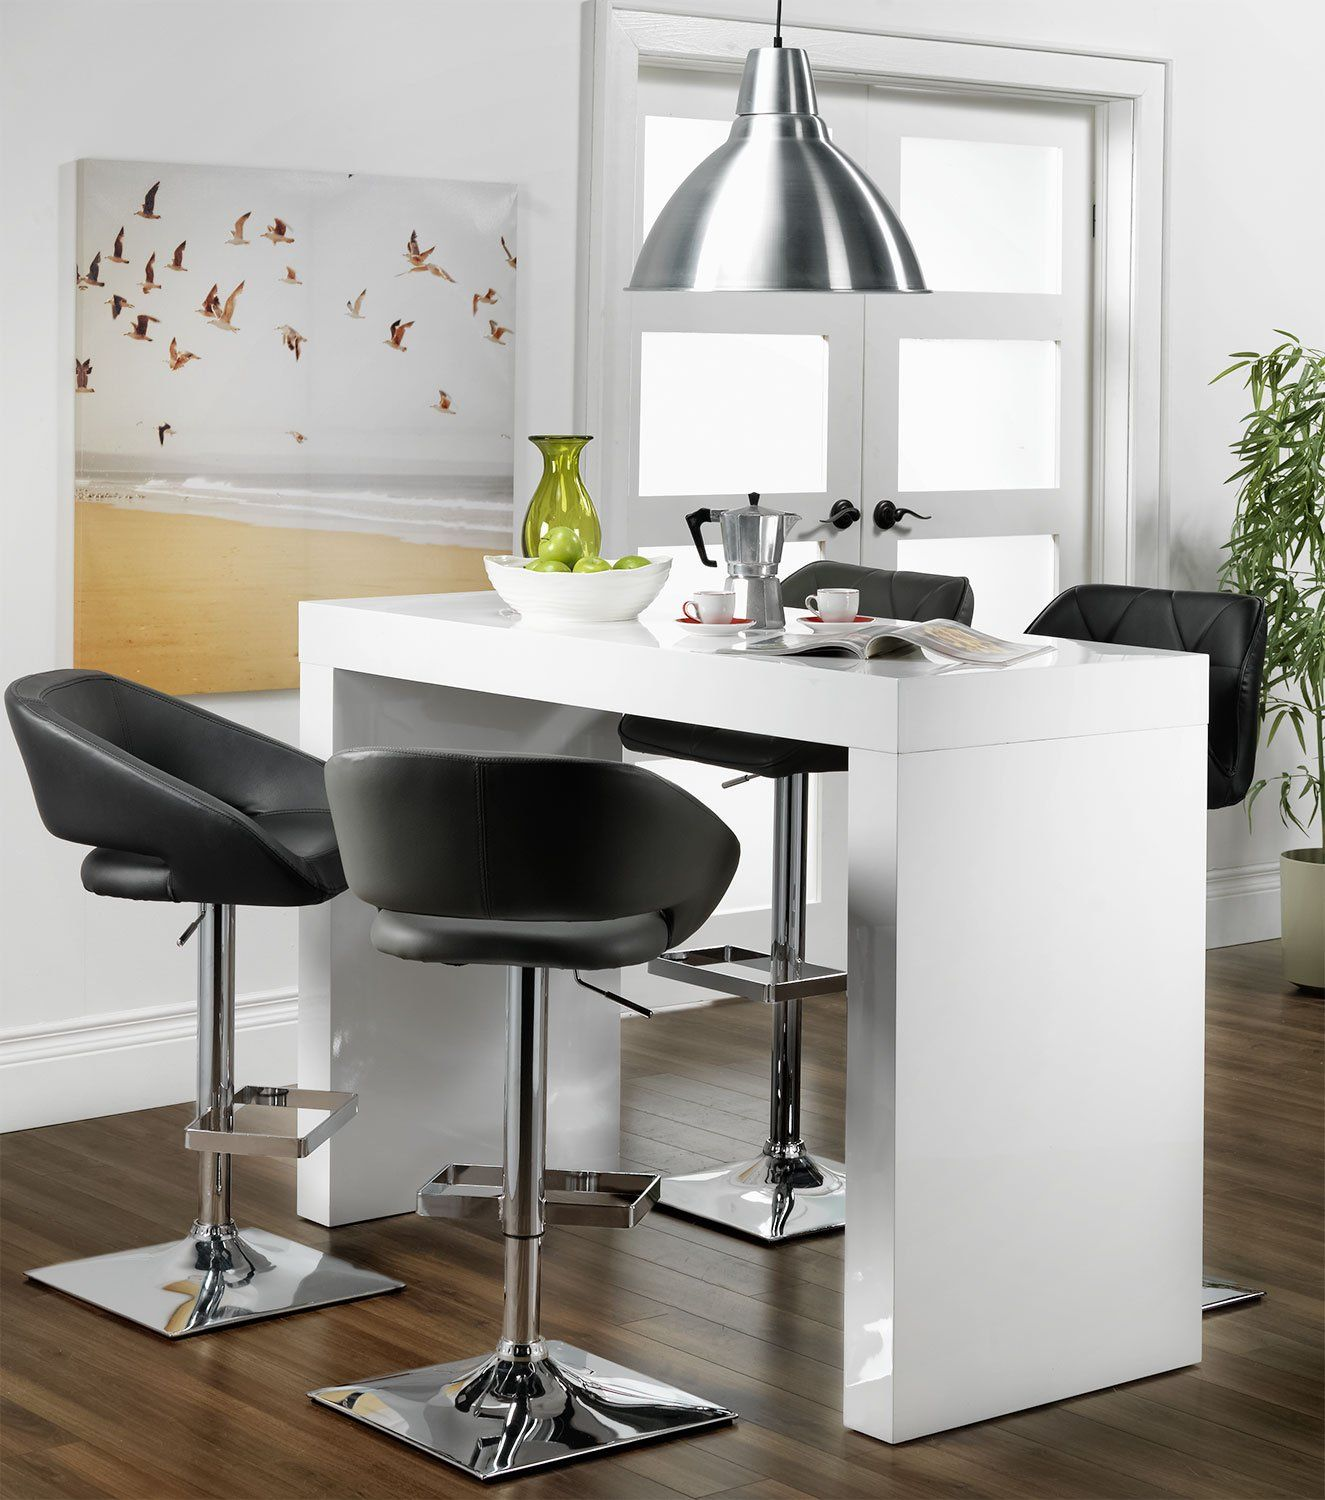 Emile Bar Table   White   Bar table and stools, Breakfast bar ...